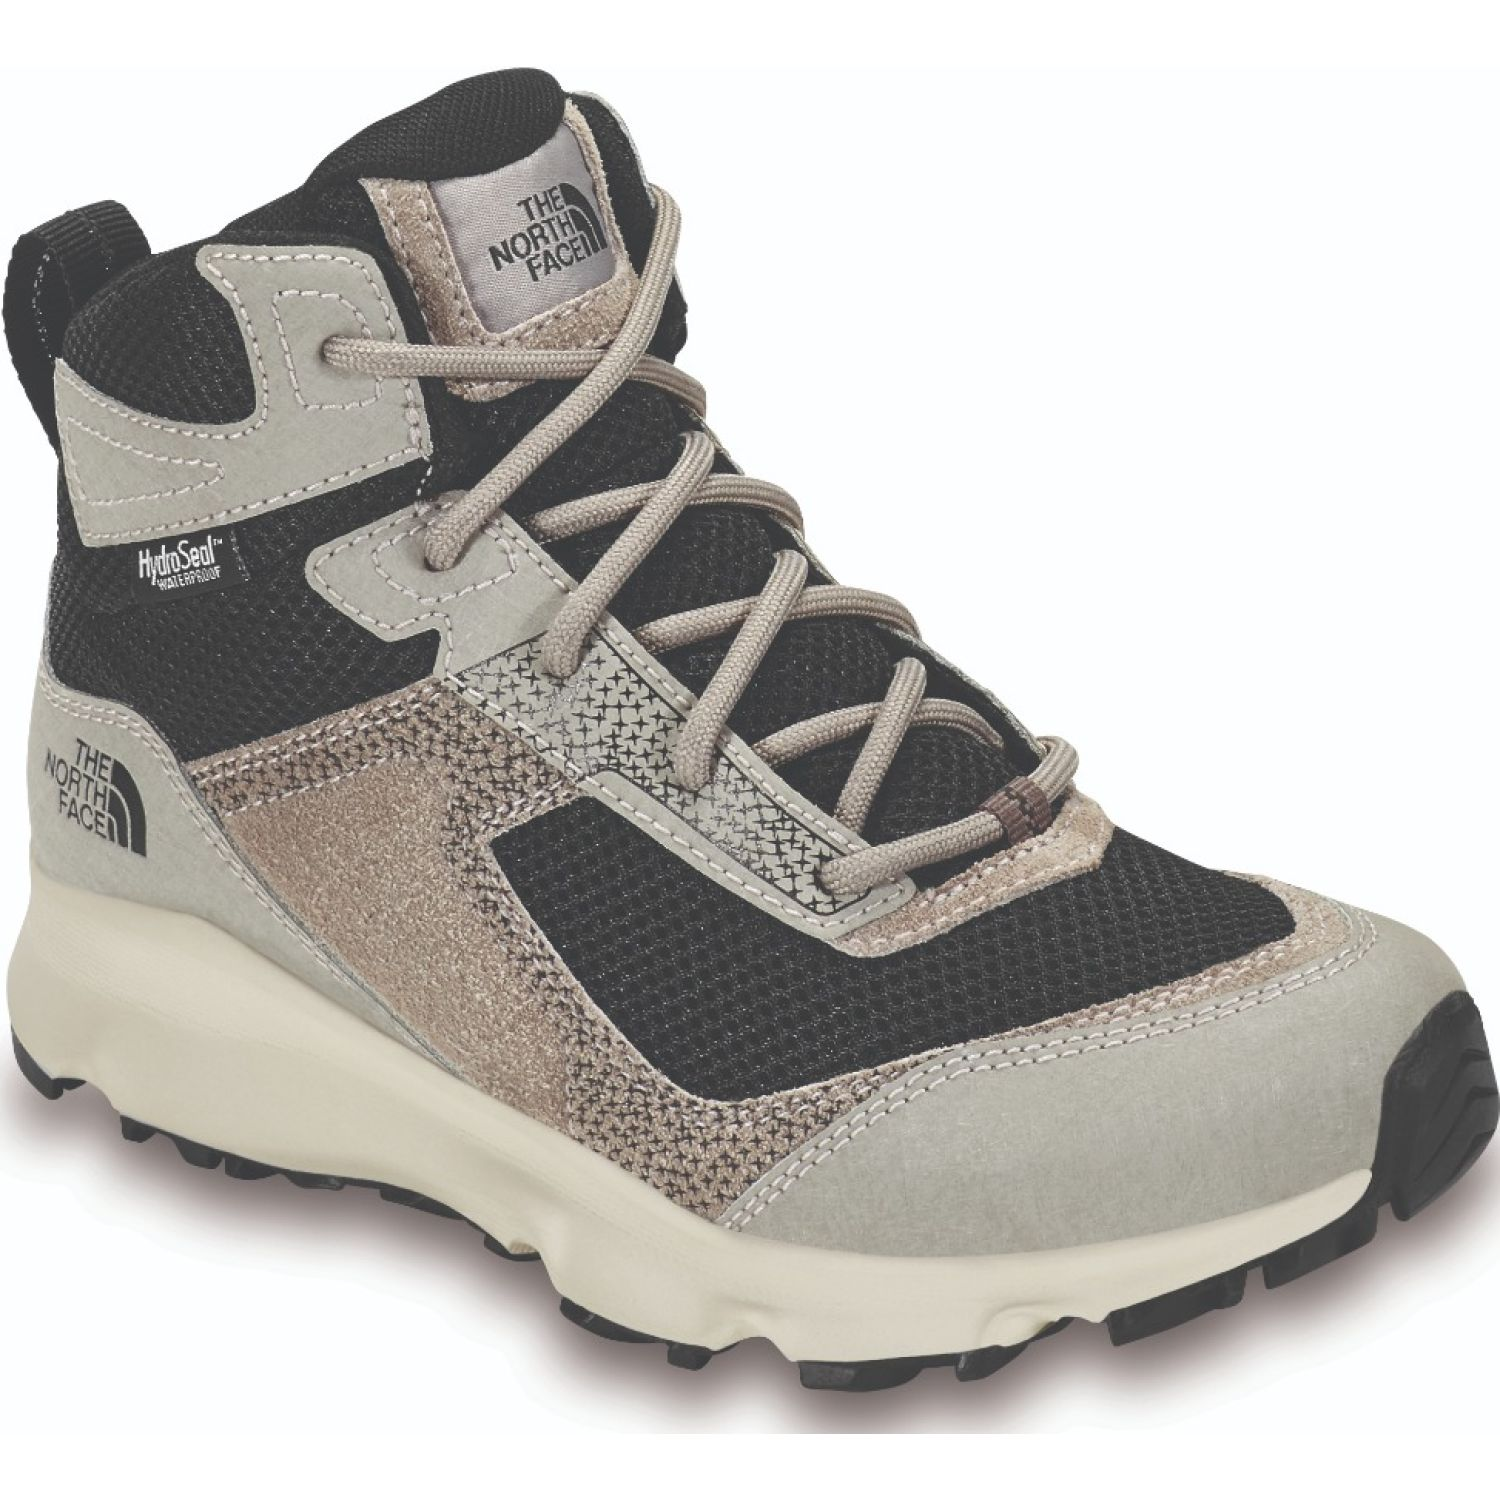 The North Face Jr Hedgehog Hiker Ii Mid Wp NEGRO / GRIS Zapatos de senderismo